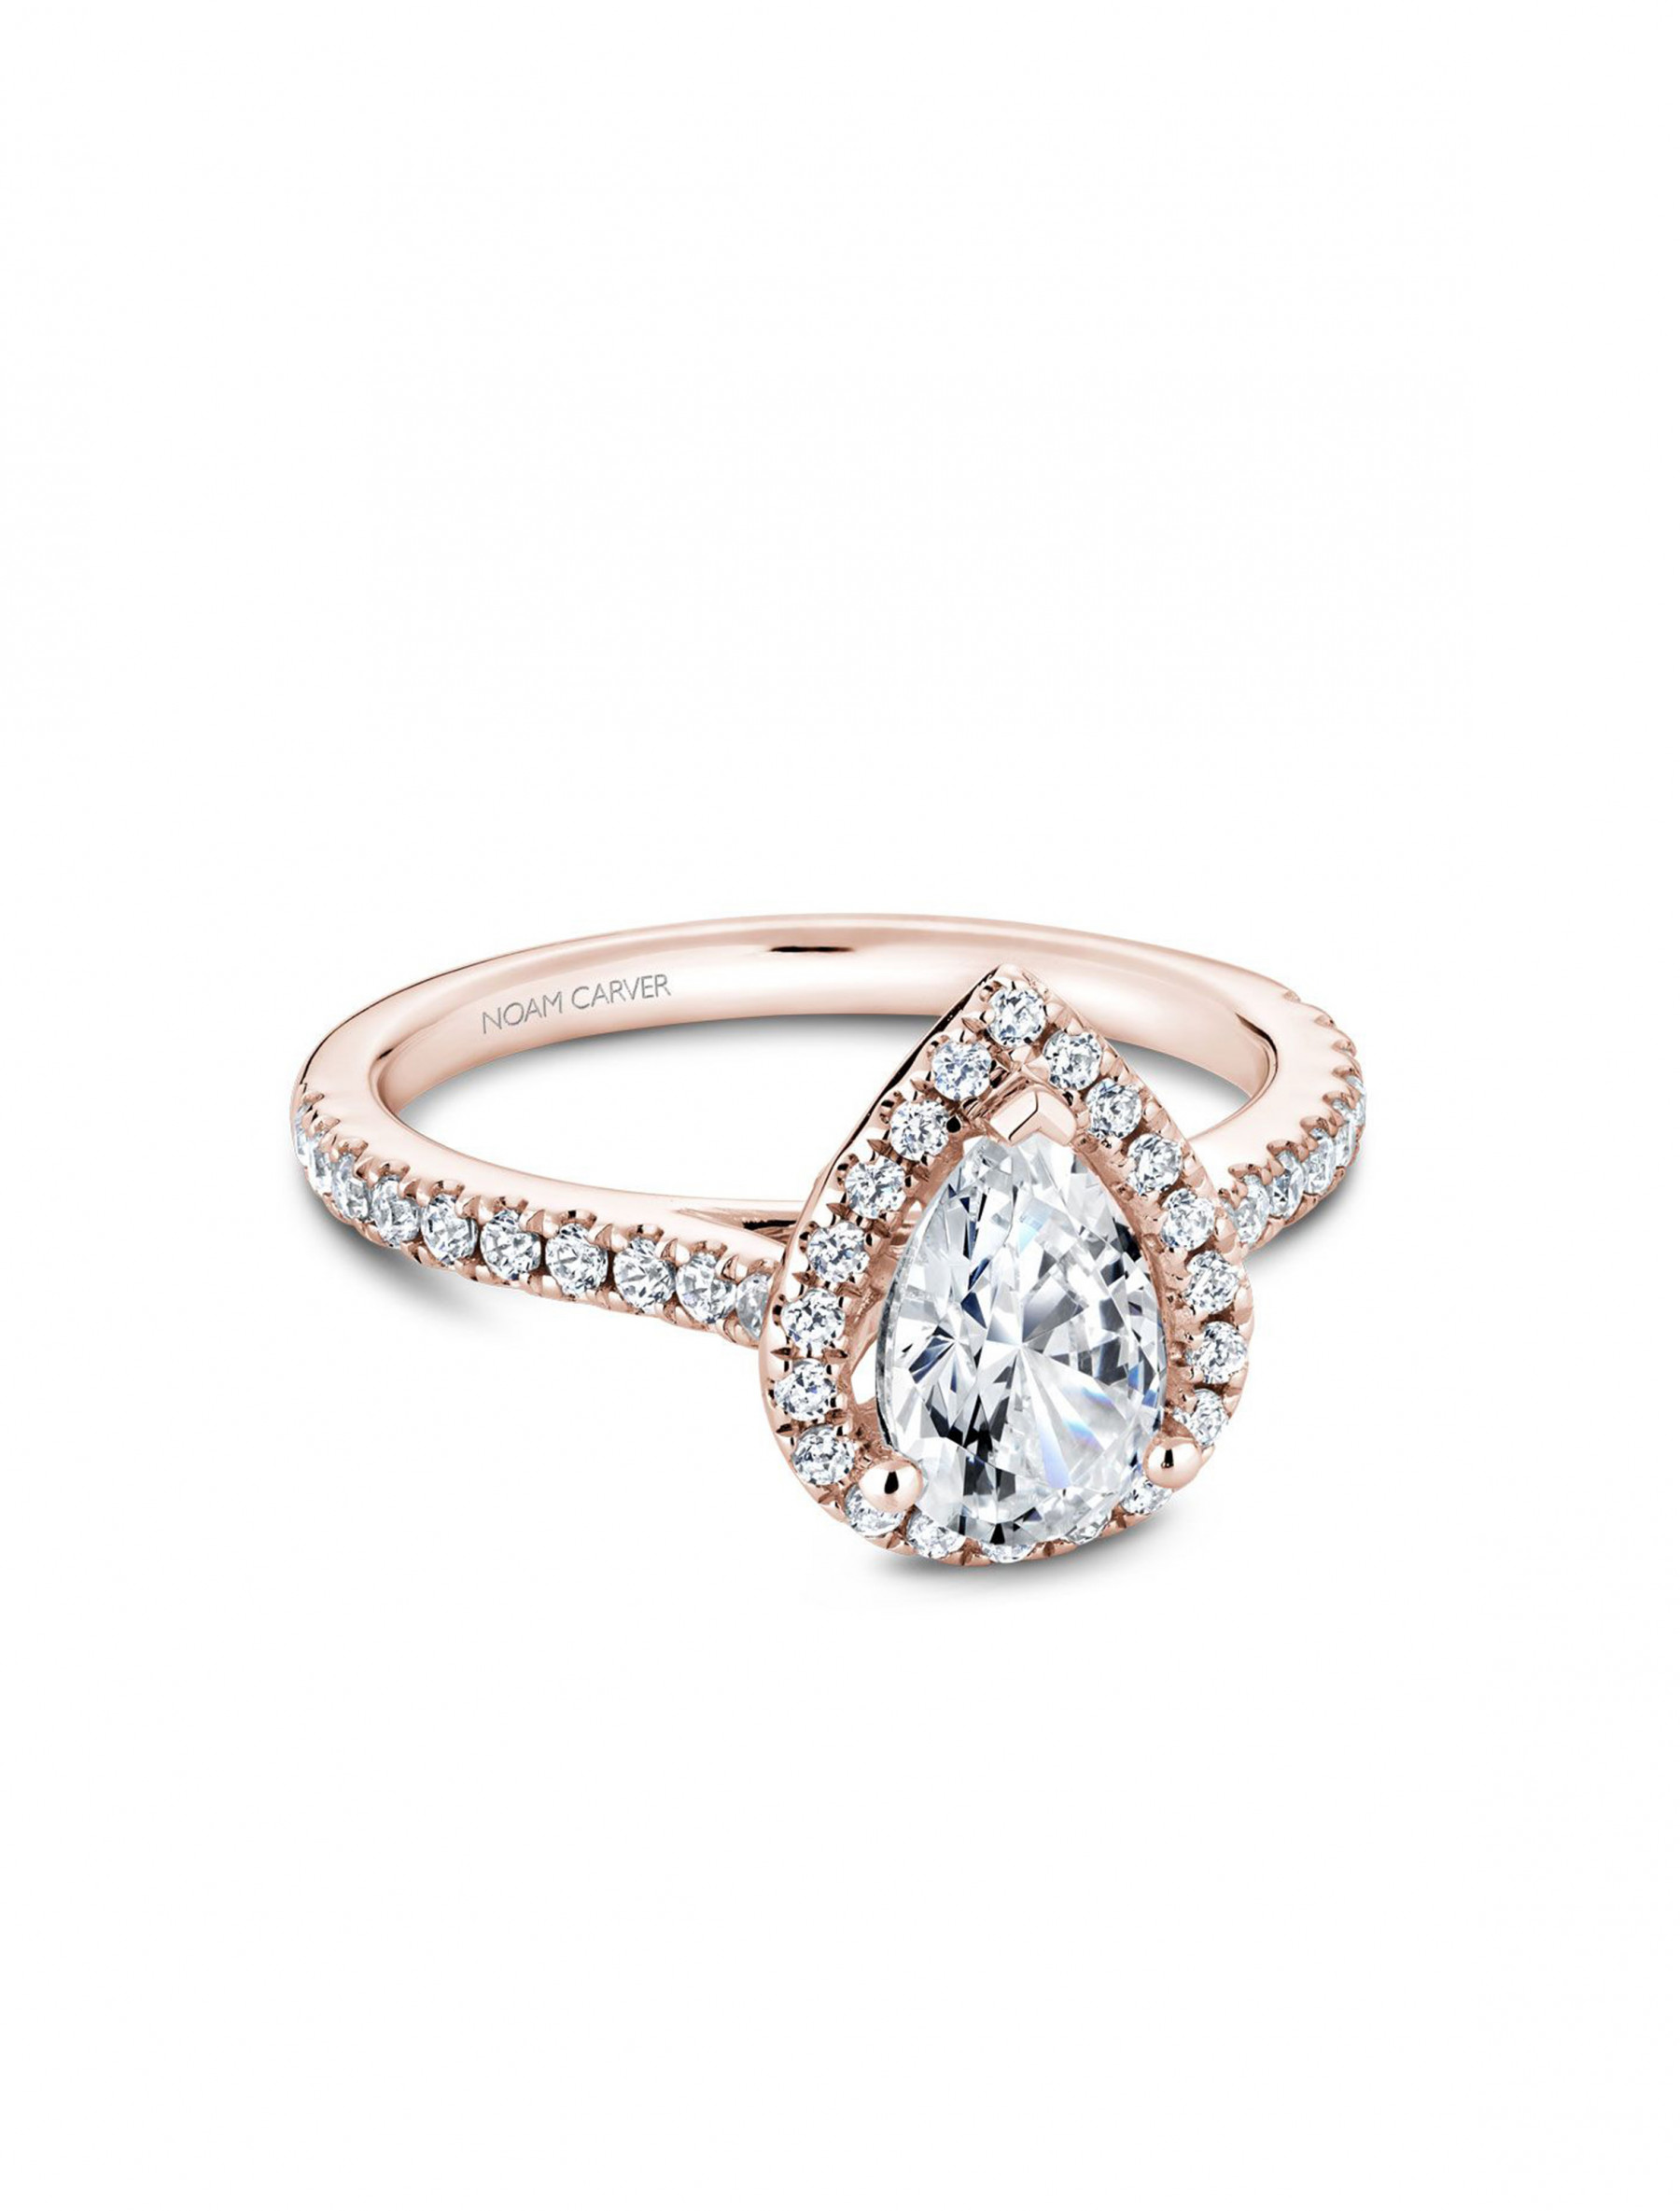 Noam Carver Pear Pave Diamond Halo Engagement Ring Setting in 14K Rose Gold main view